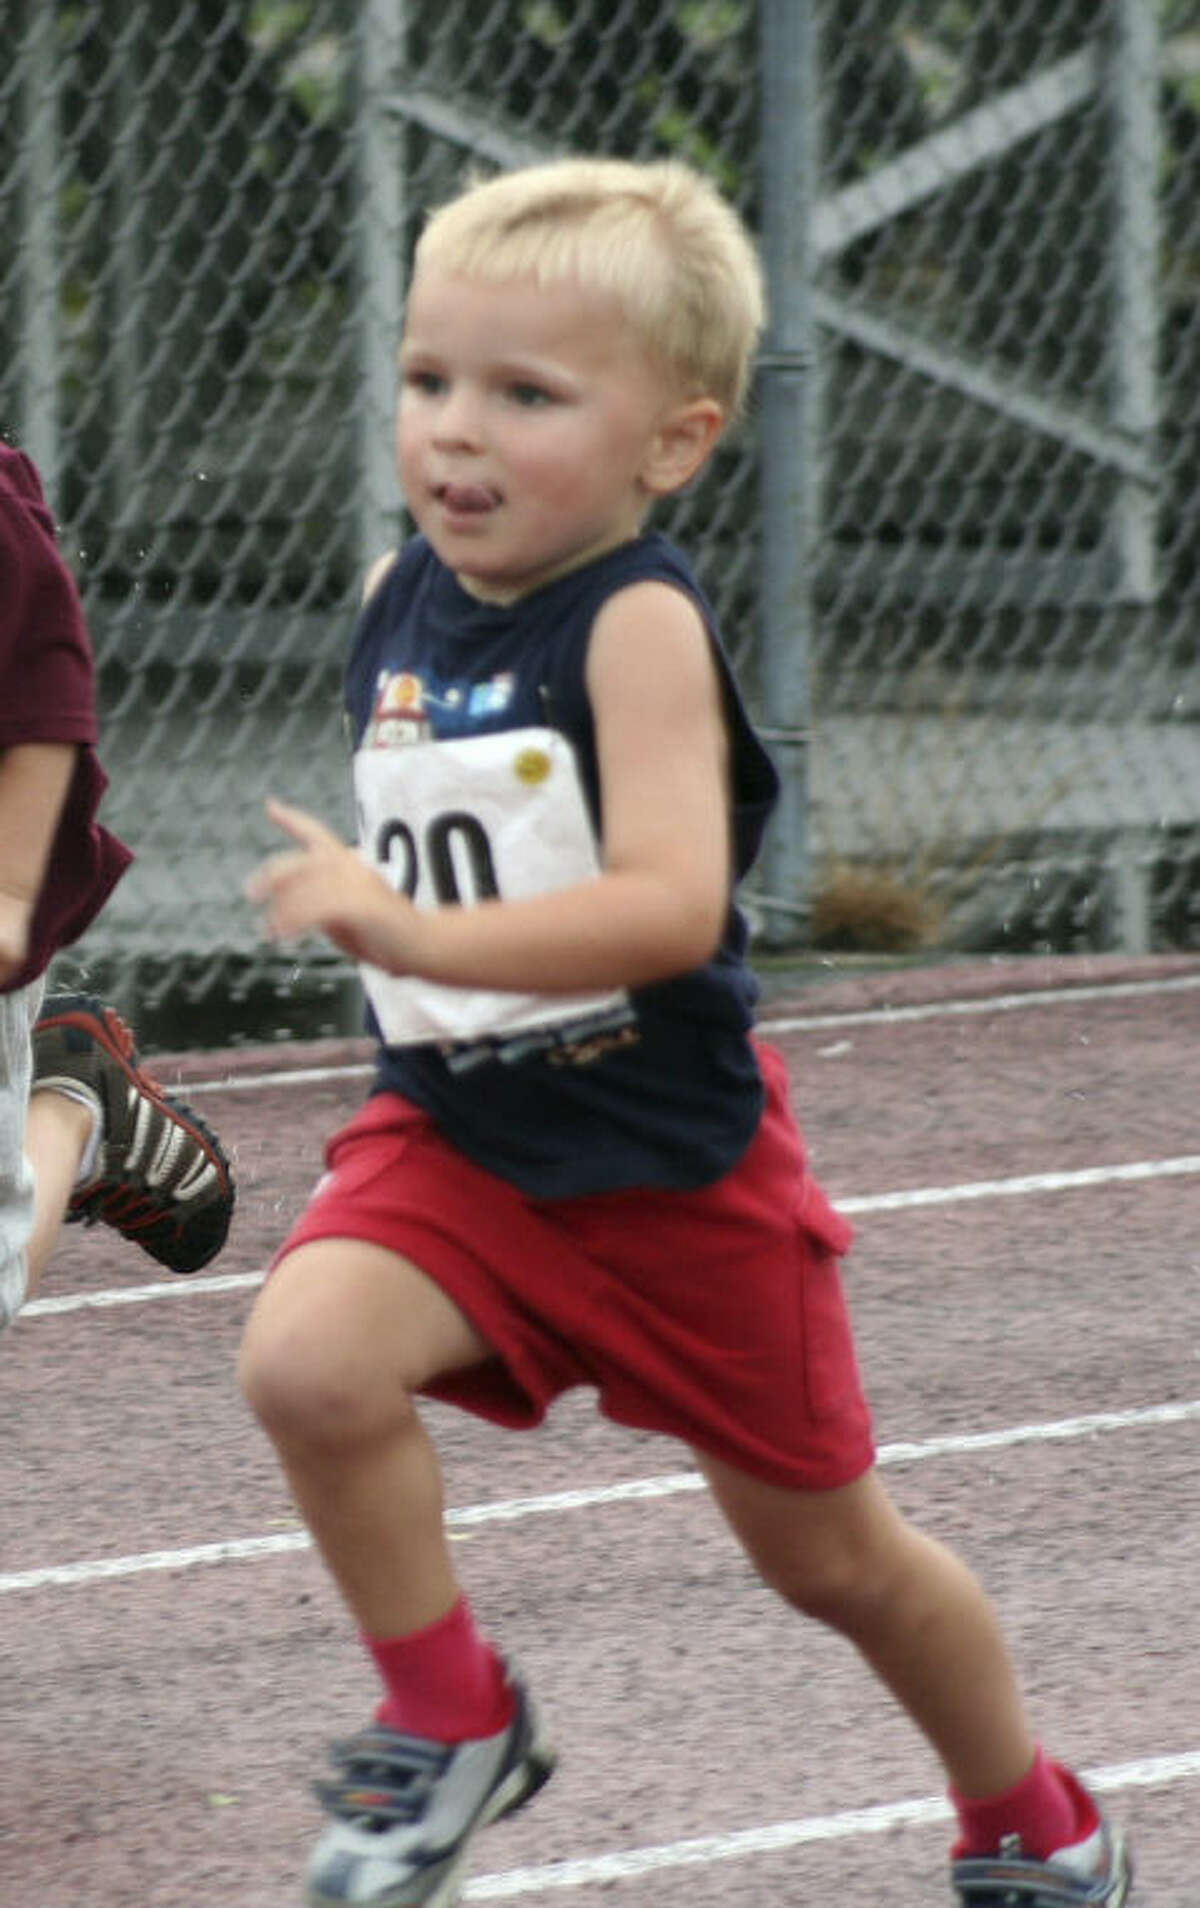 In this 2009 file photo provided by the Kowalski family, Chase Kowalski, at 2½ years old, runs in a race at Bethel High School in Bethel, Conn. Chase Kowalski loved to race, whether it was running, swimming or riding his bike. The 7-year-old, one of 26 people killed last Dec. 14 inside the Sandy Hook Elementary school, ran competitively for the first time when he was just 2½ years old. His parents decided to honor Chase?'s memory by a starting a foundation, raising money for children?'s fitness projects, family wellness and preschool education scholarships. (AP Photo/Kowalski family)